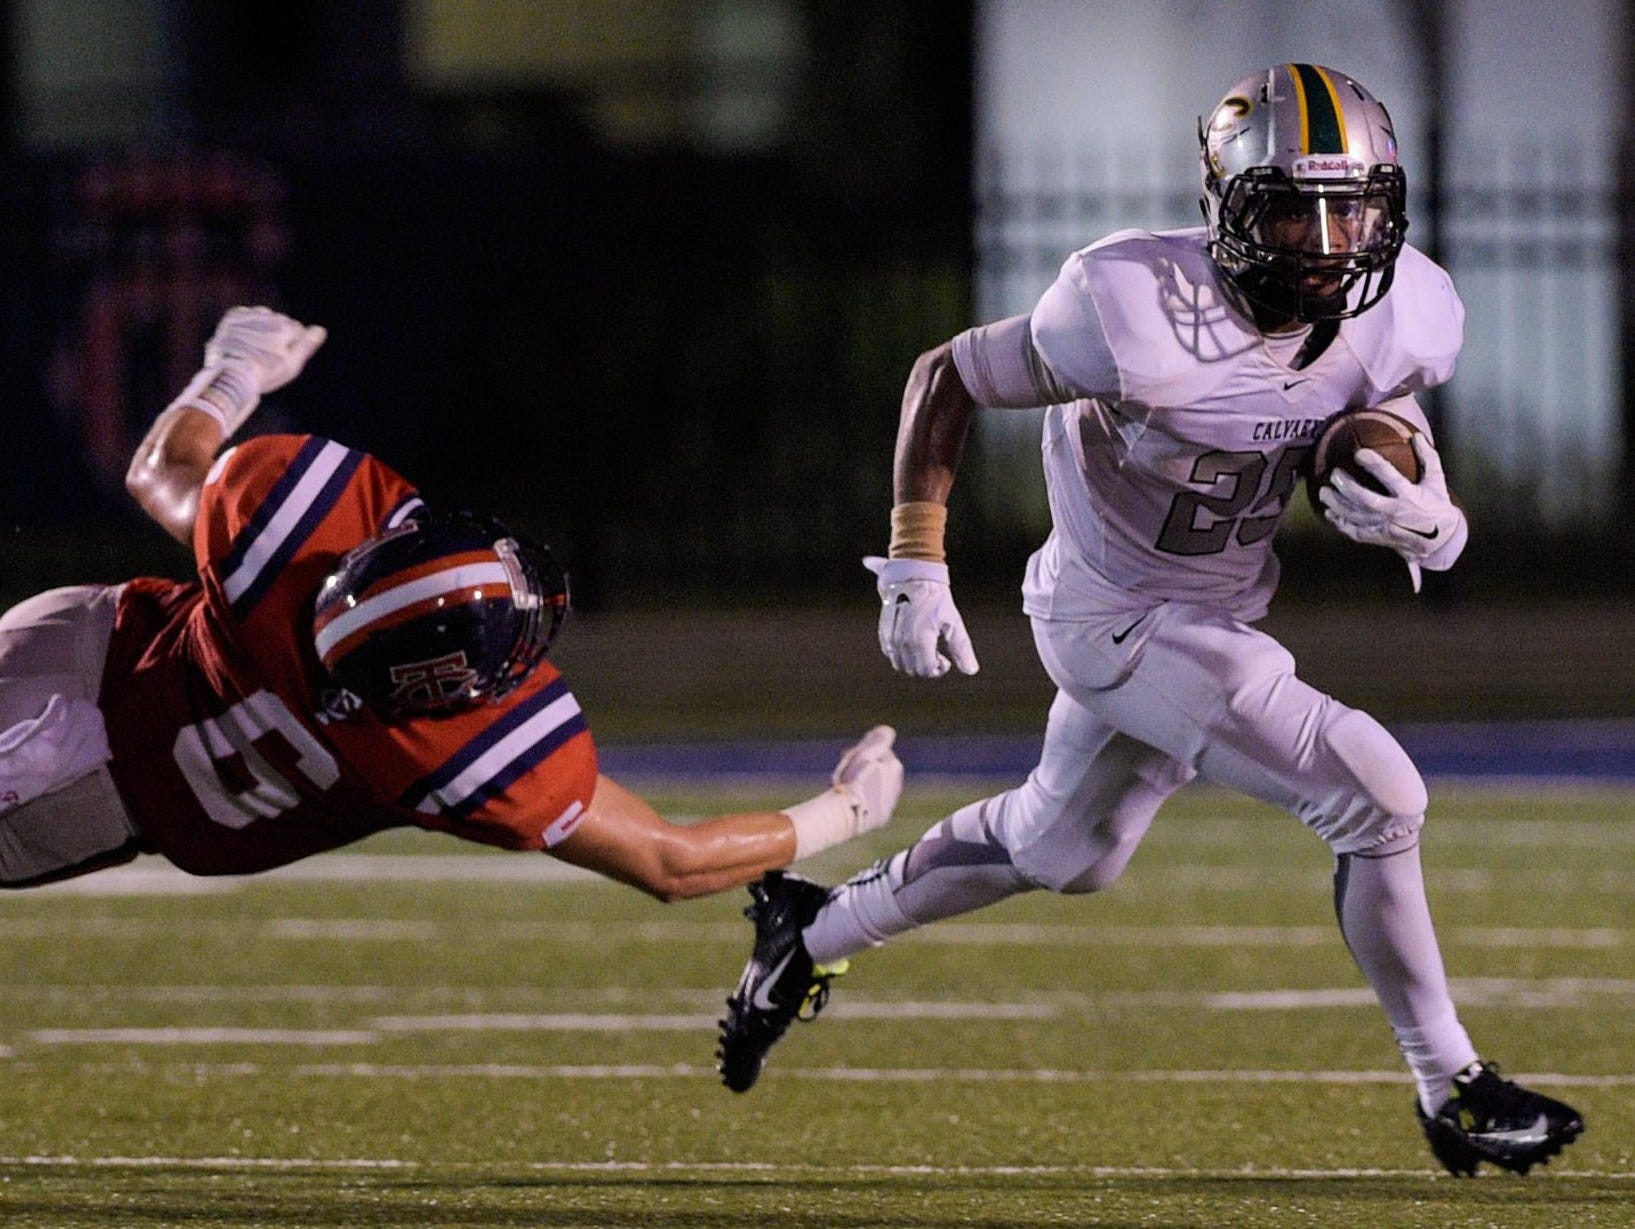 With 244 ruahing yards and three touchdowns, Calvary running back Kordavion Washington was the leading performer on the Week 1 Prep Fantasy Football ballot.